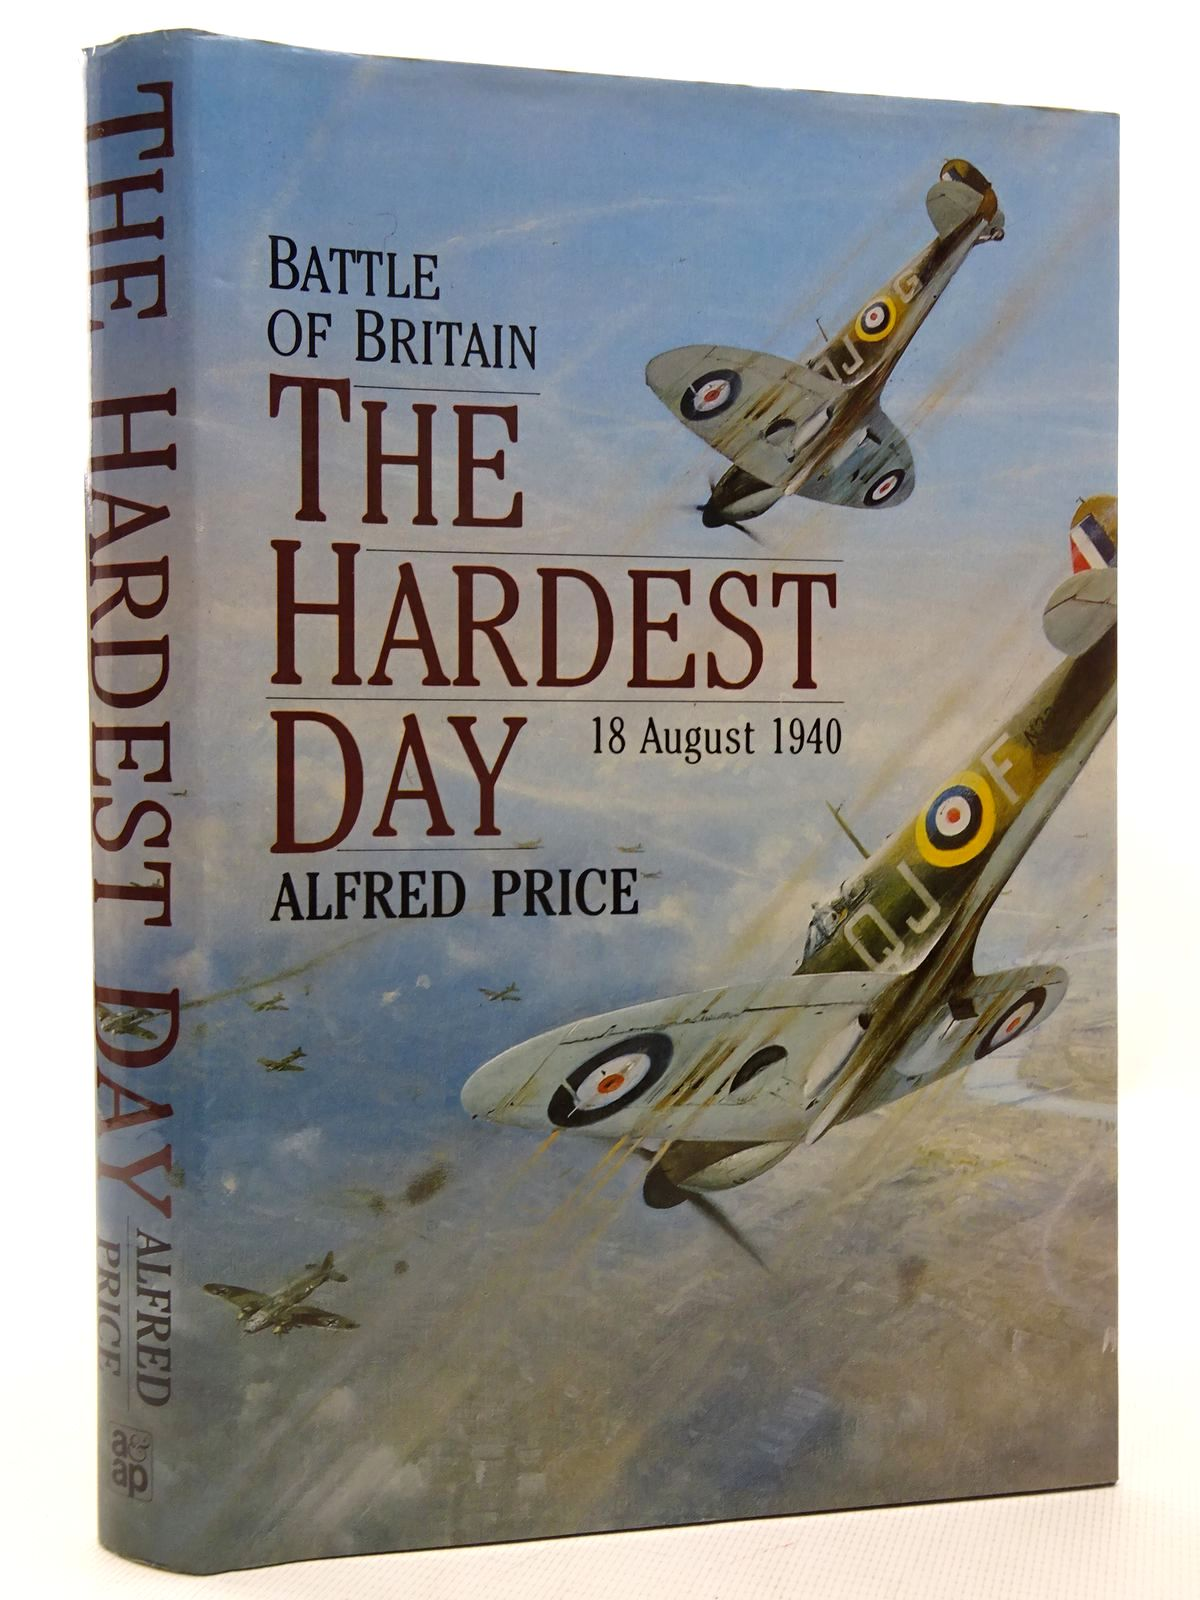 Photo of BATTLE OF BRITAIN: THE HARDEST DAY 18 AUGUST 1940 written by Price, Alfred published by Arms & Armour Press (STOCK CODE: 1610248)  for sale by Stella & Rose's Books